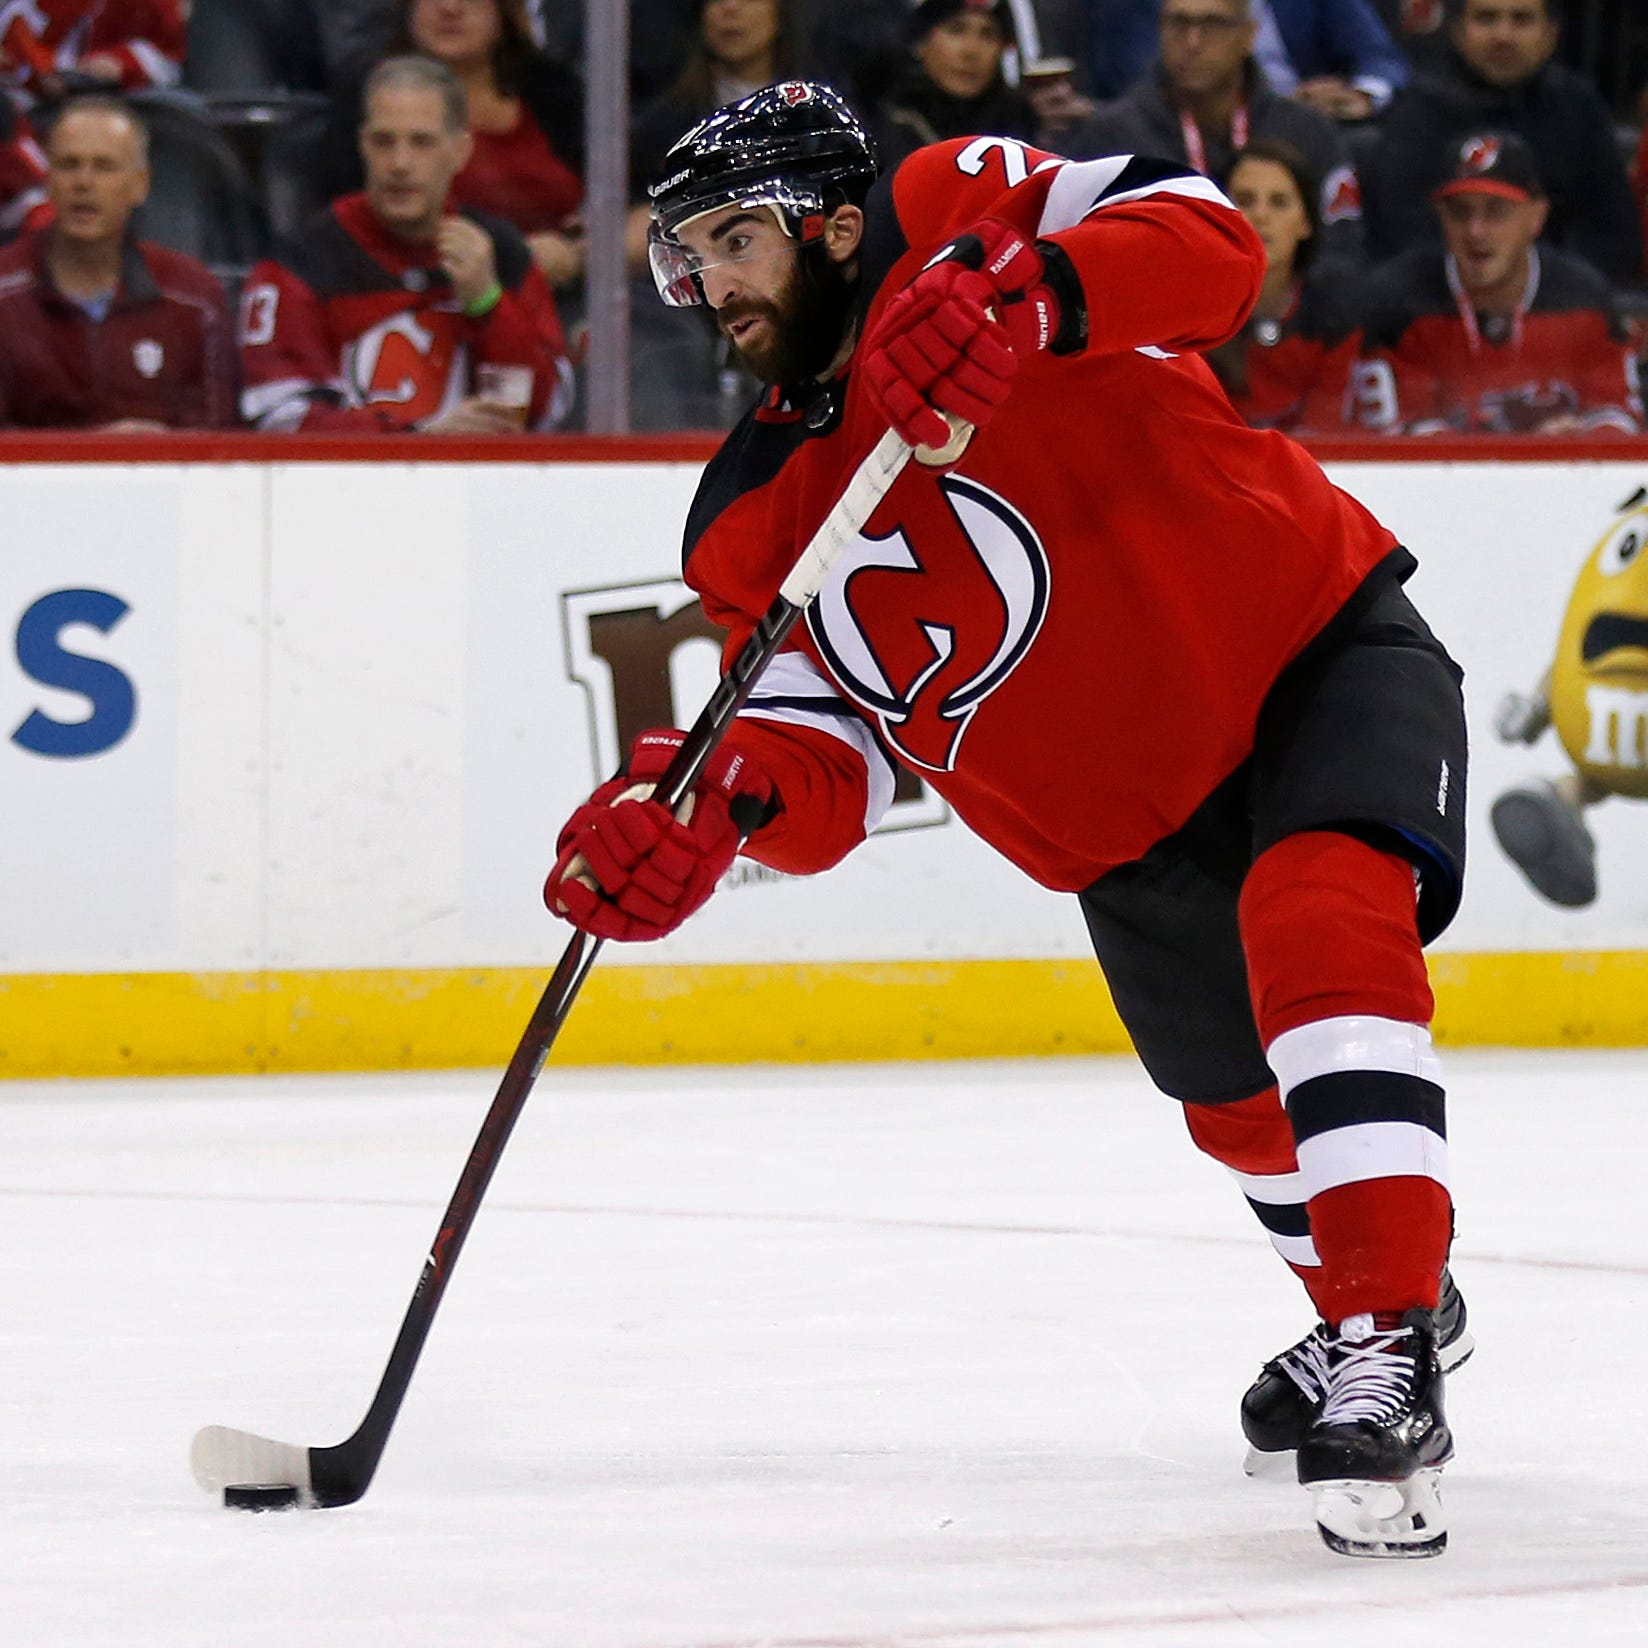 NJ Devils stay hot, win fourth straight to register best start since 1995-96